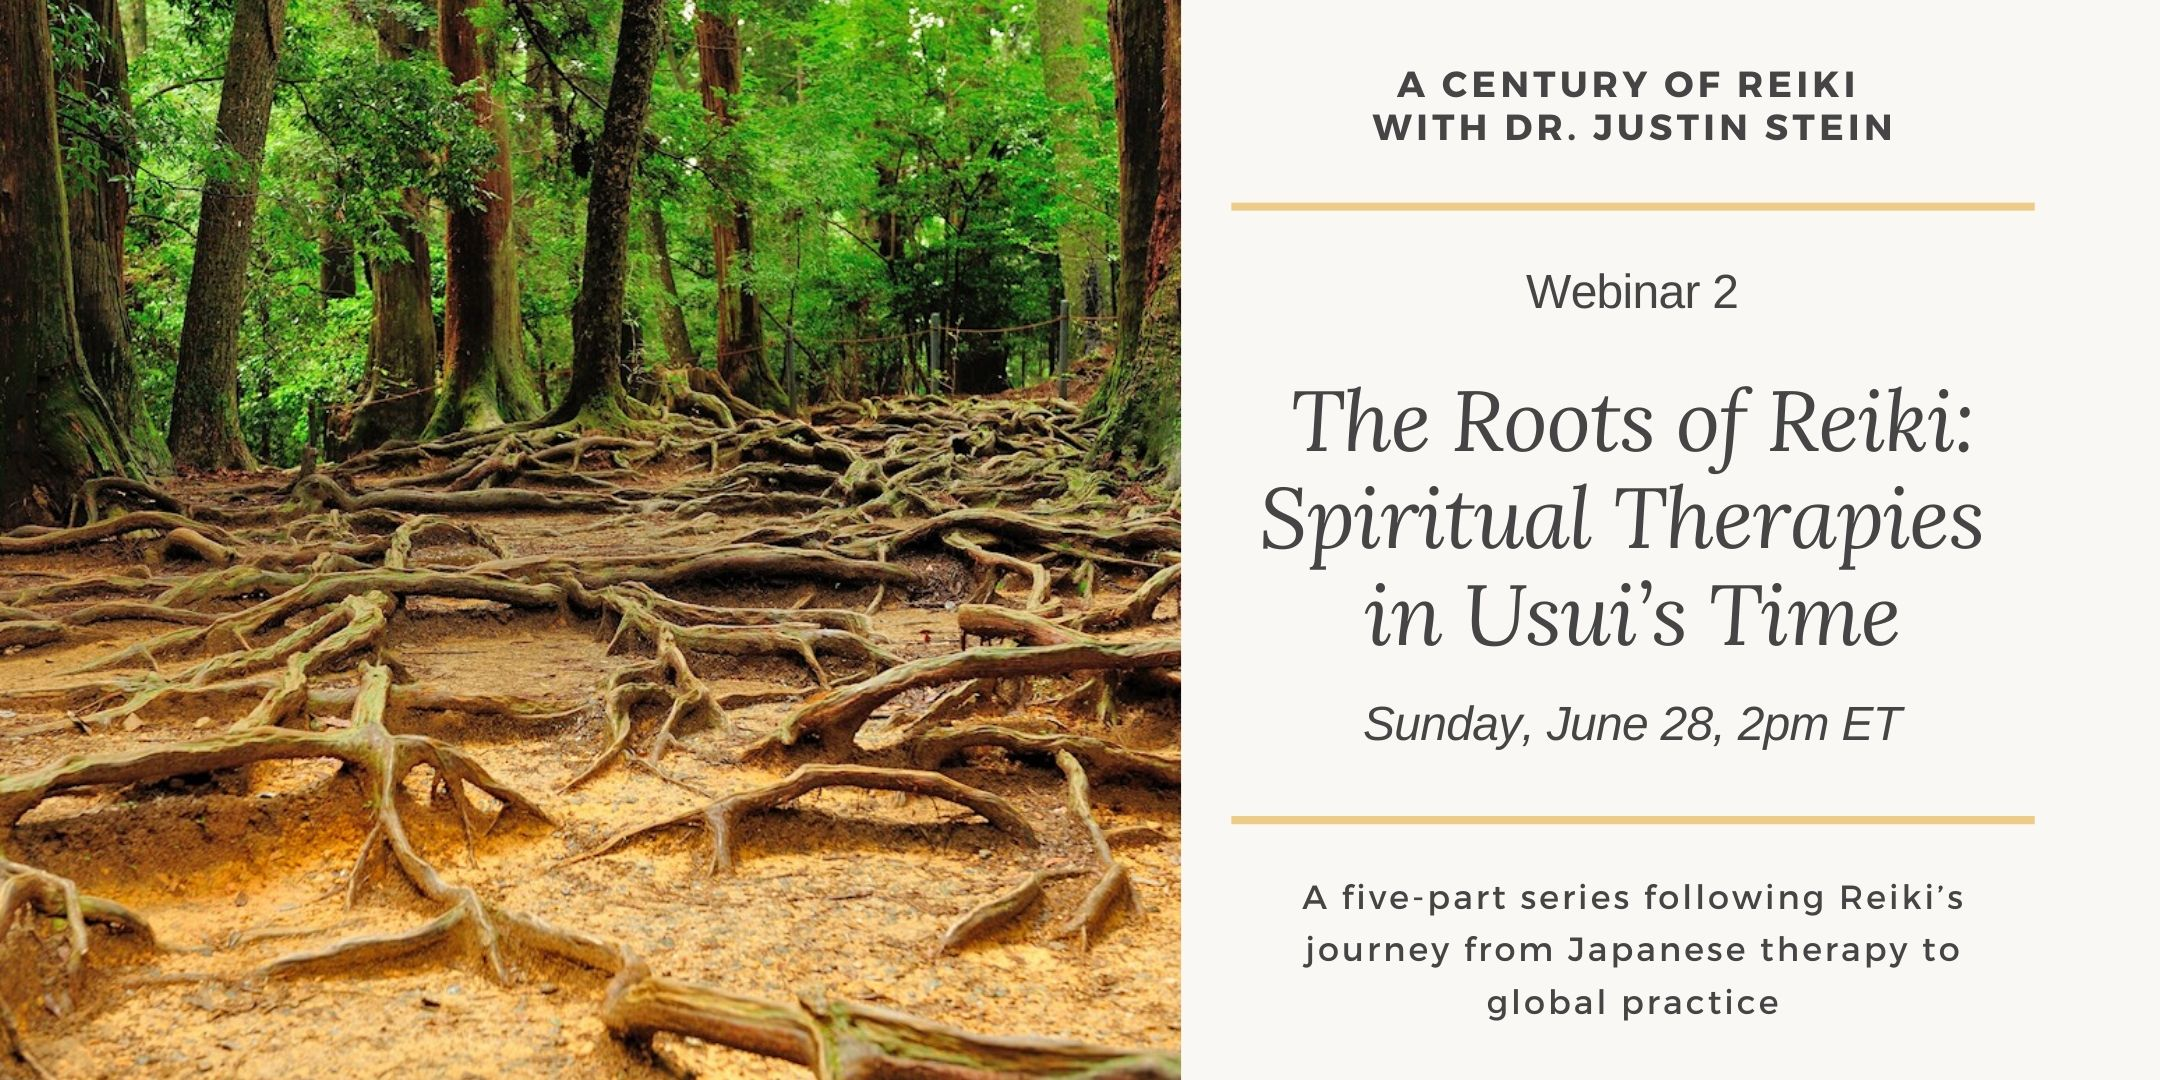 Image for webinar 2 in the series A Century of Reiki with Dr. Justin Stein